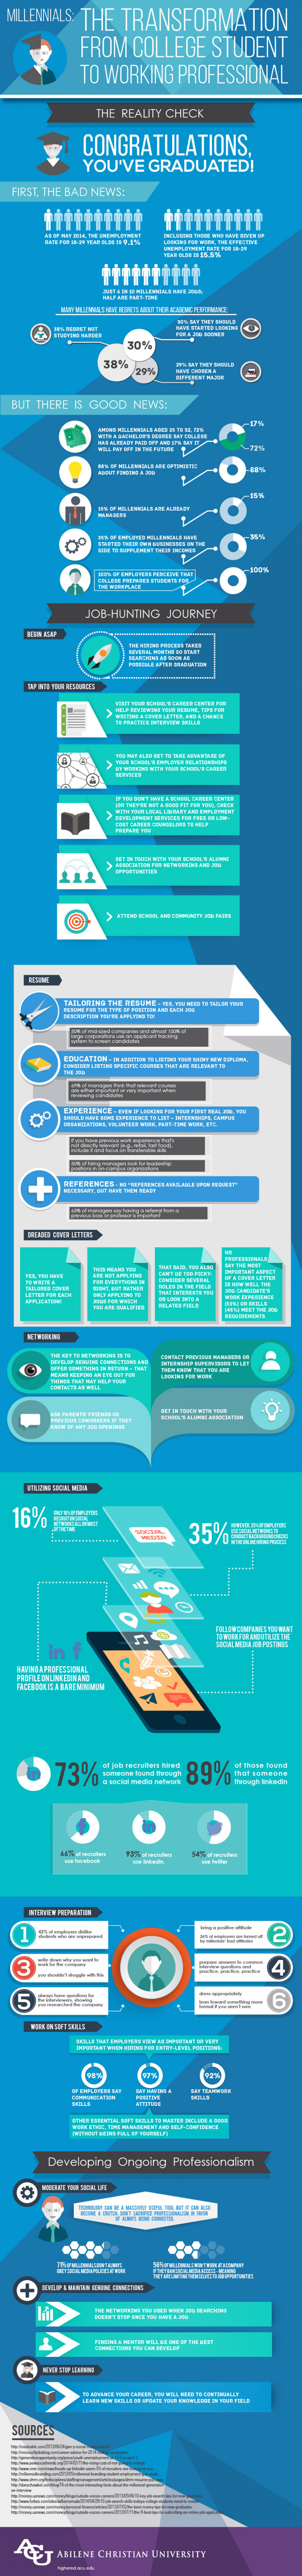 Transforming from College Student to Working Professional Infographic